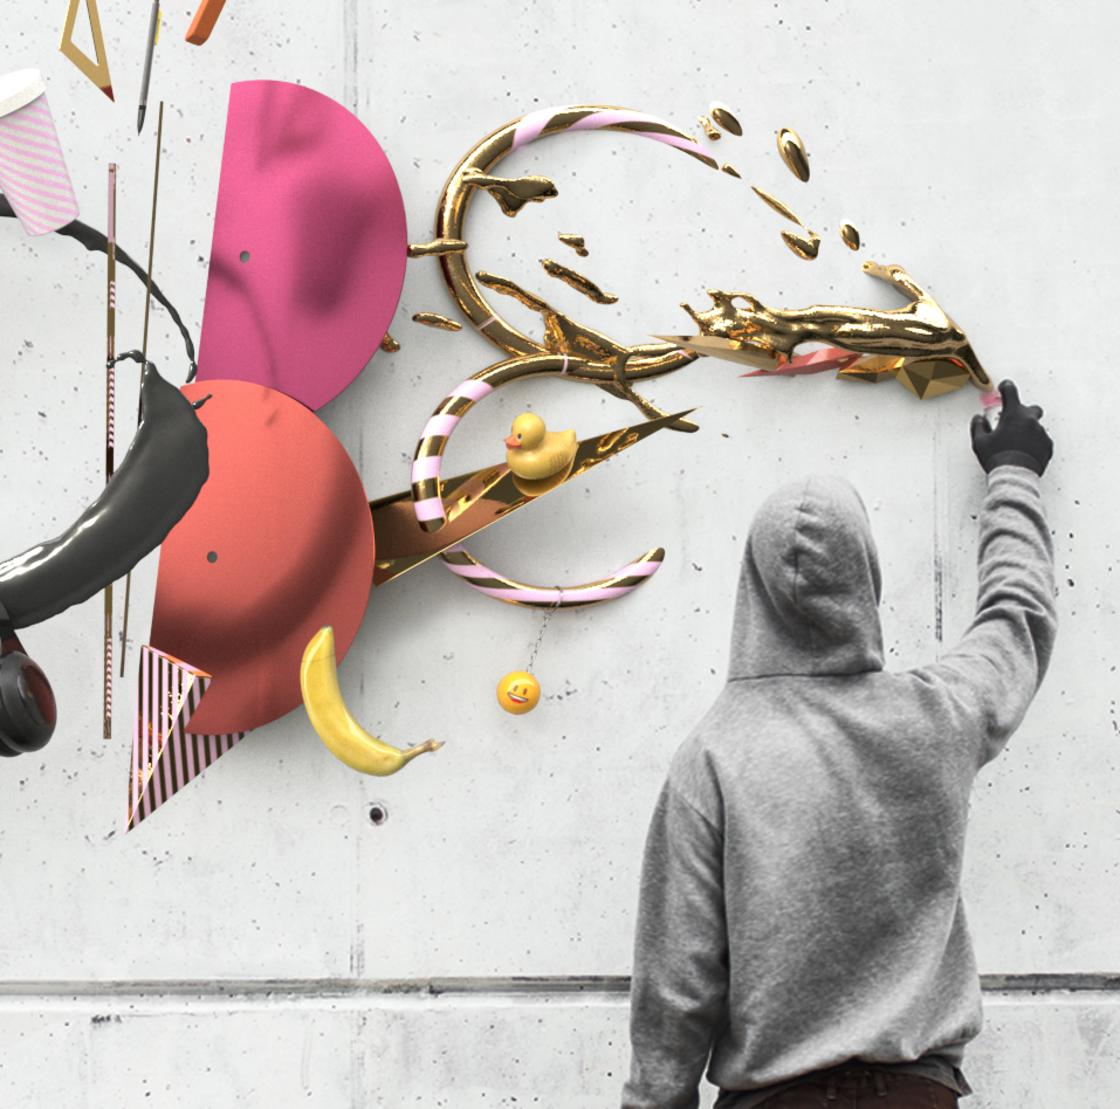 Graffiti 3D, motion design and creativity – Interview with Nicolas Ouvrier